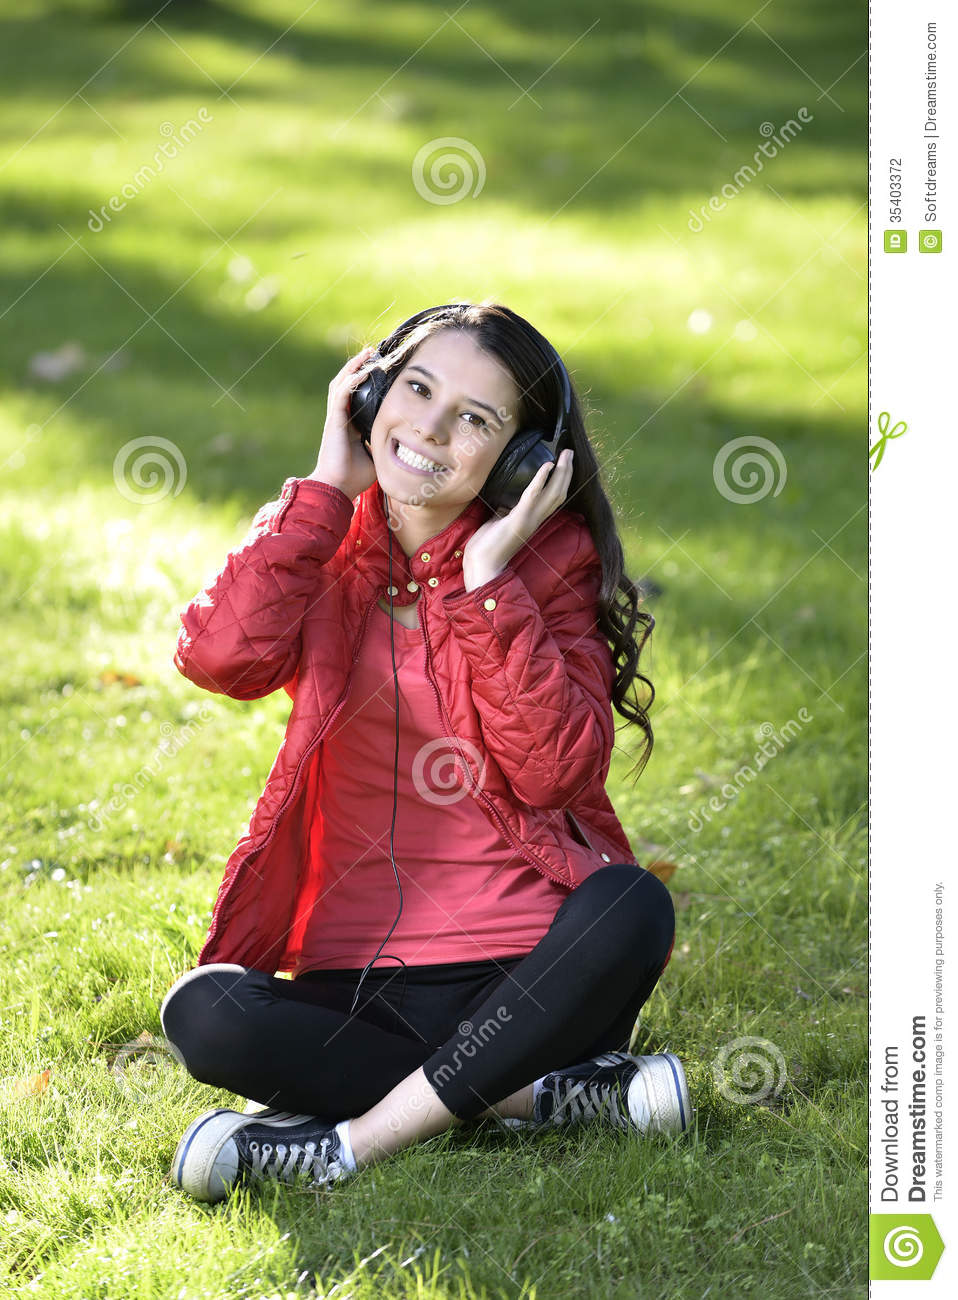 Student girl outside in park listening to music on headphones while